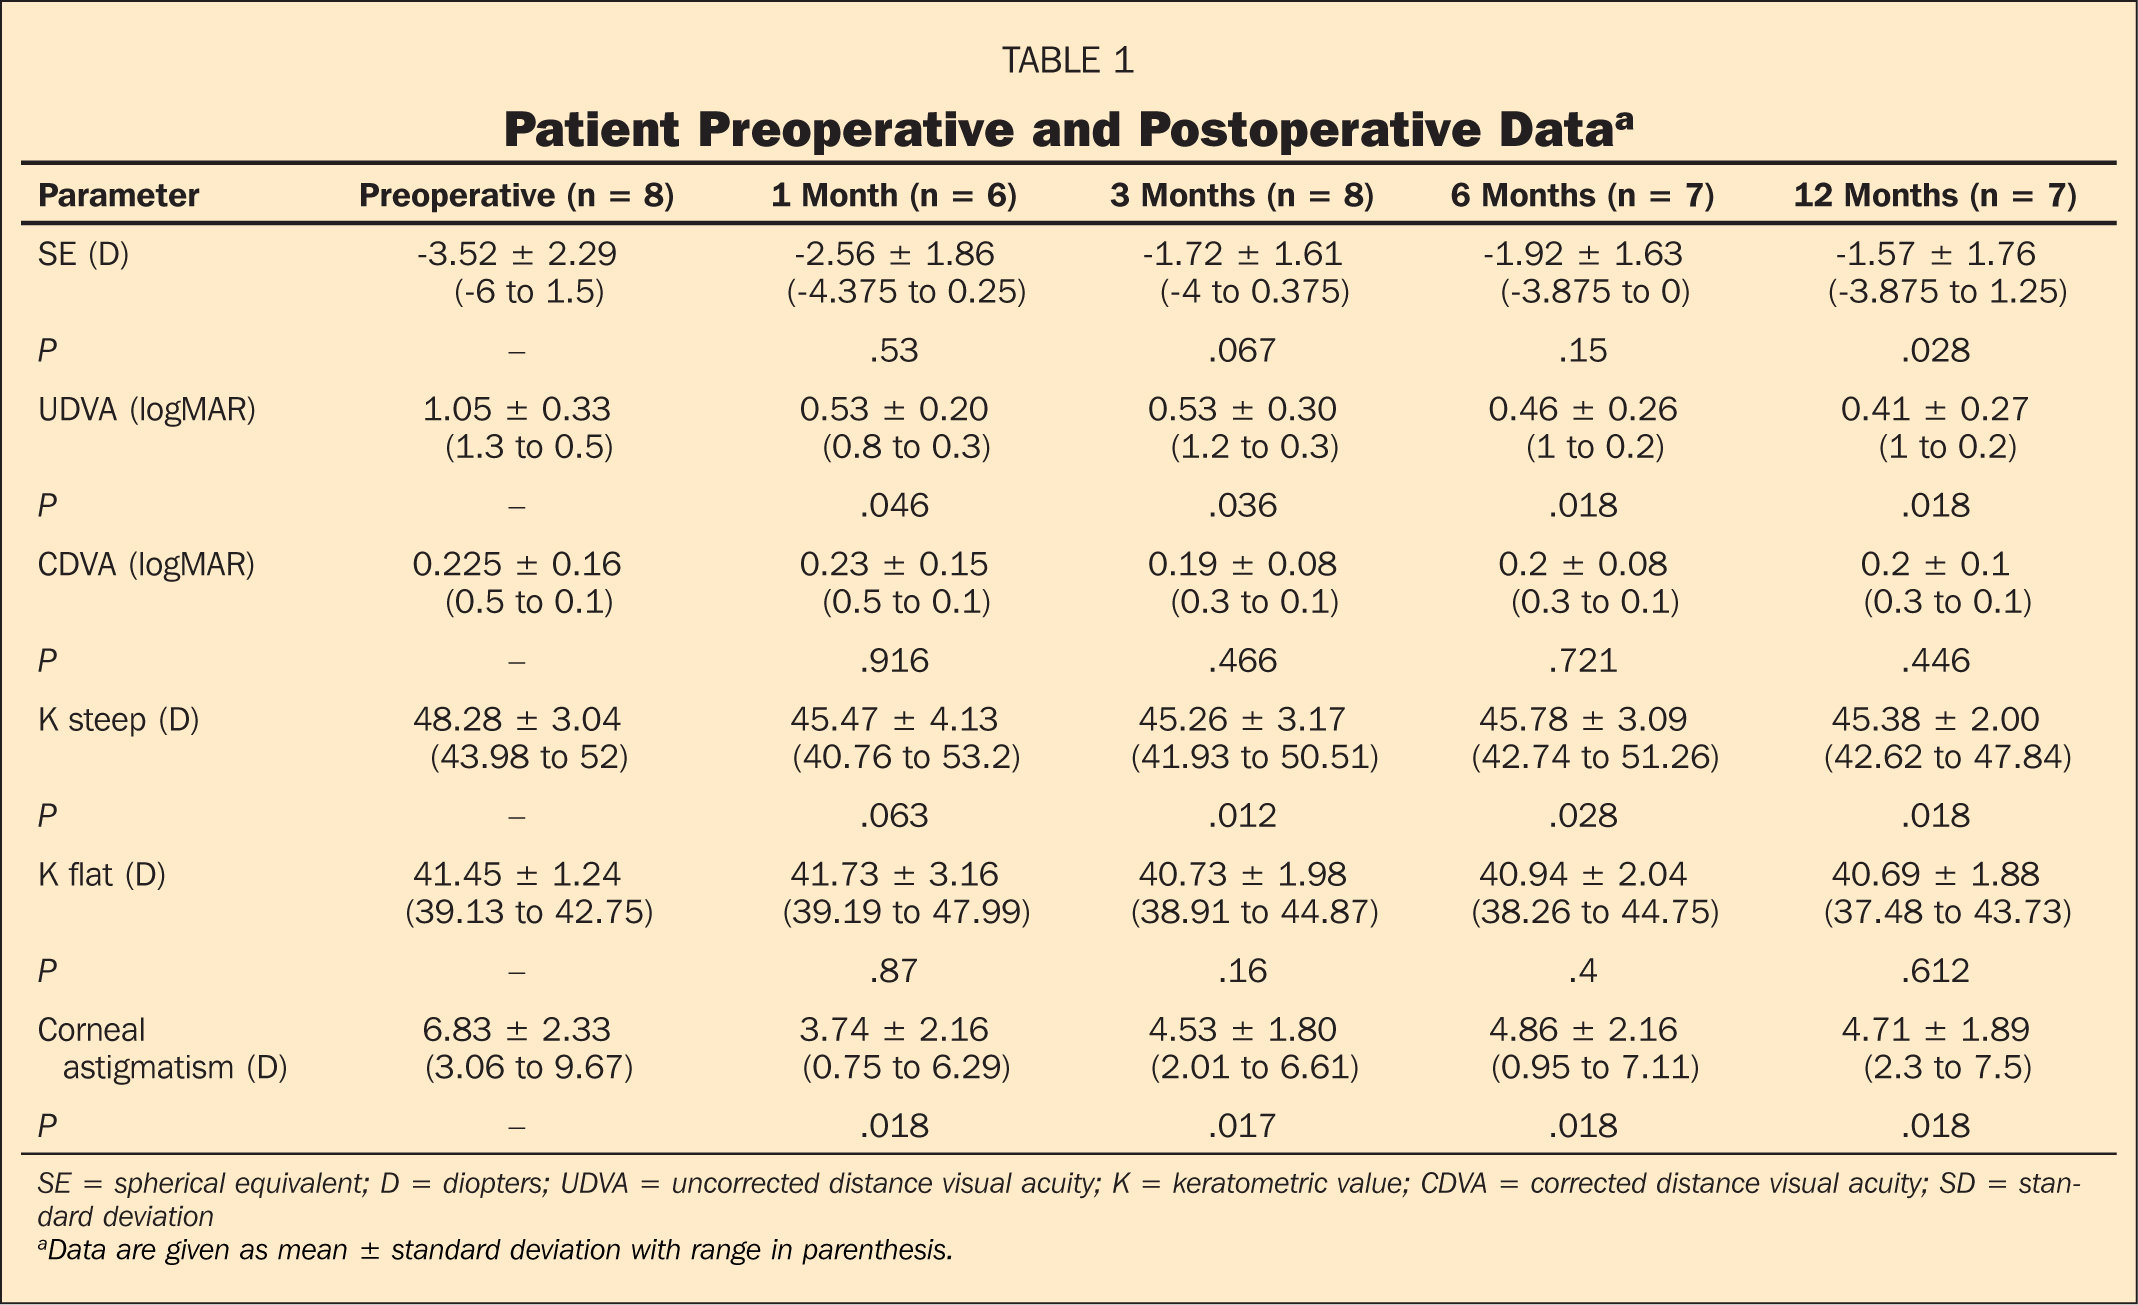 Patient Preoperative and Postoperative Dataa